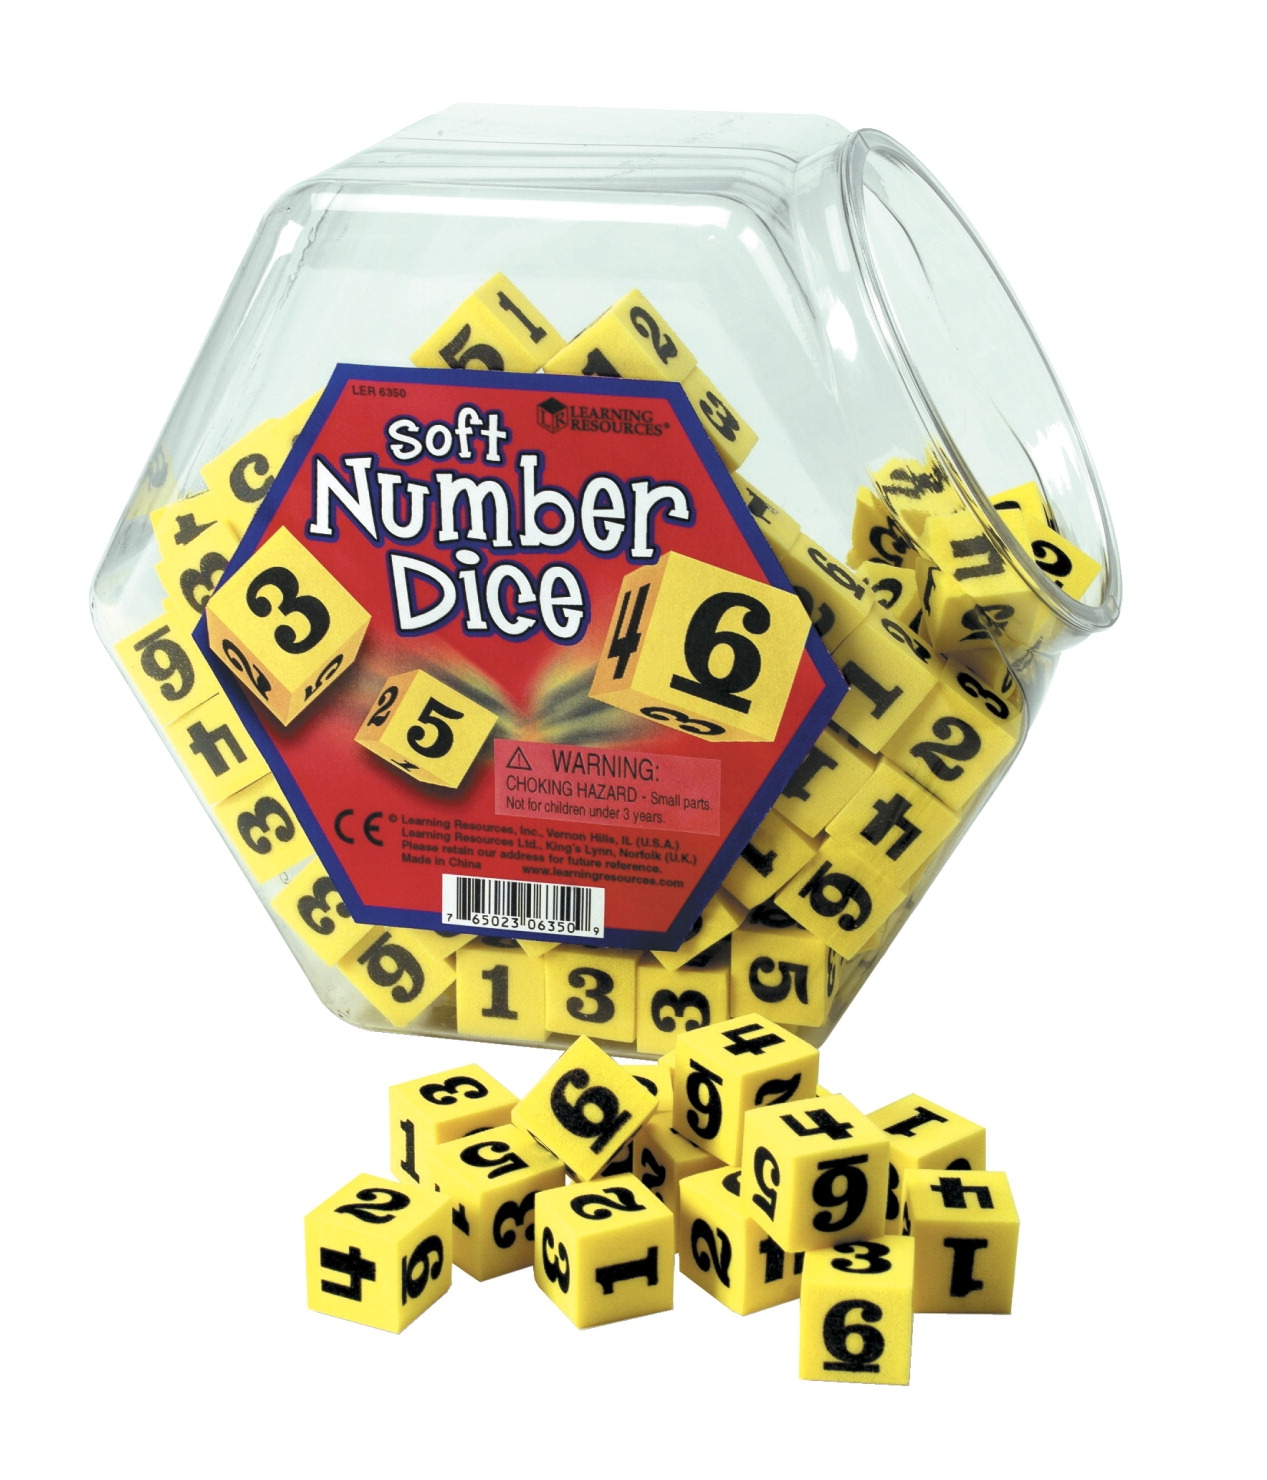 Learning Resources Hands-on Soft Number Dice - 040-7699 - Instructional Materials Resources Science Activities Equipment Physical Science Projects Books 040-7699